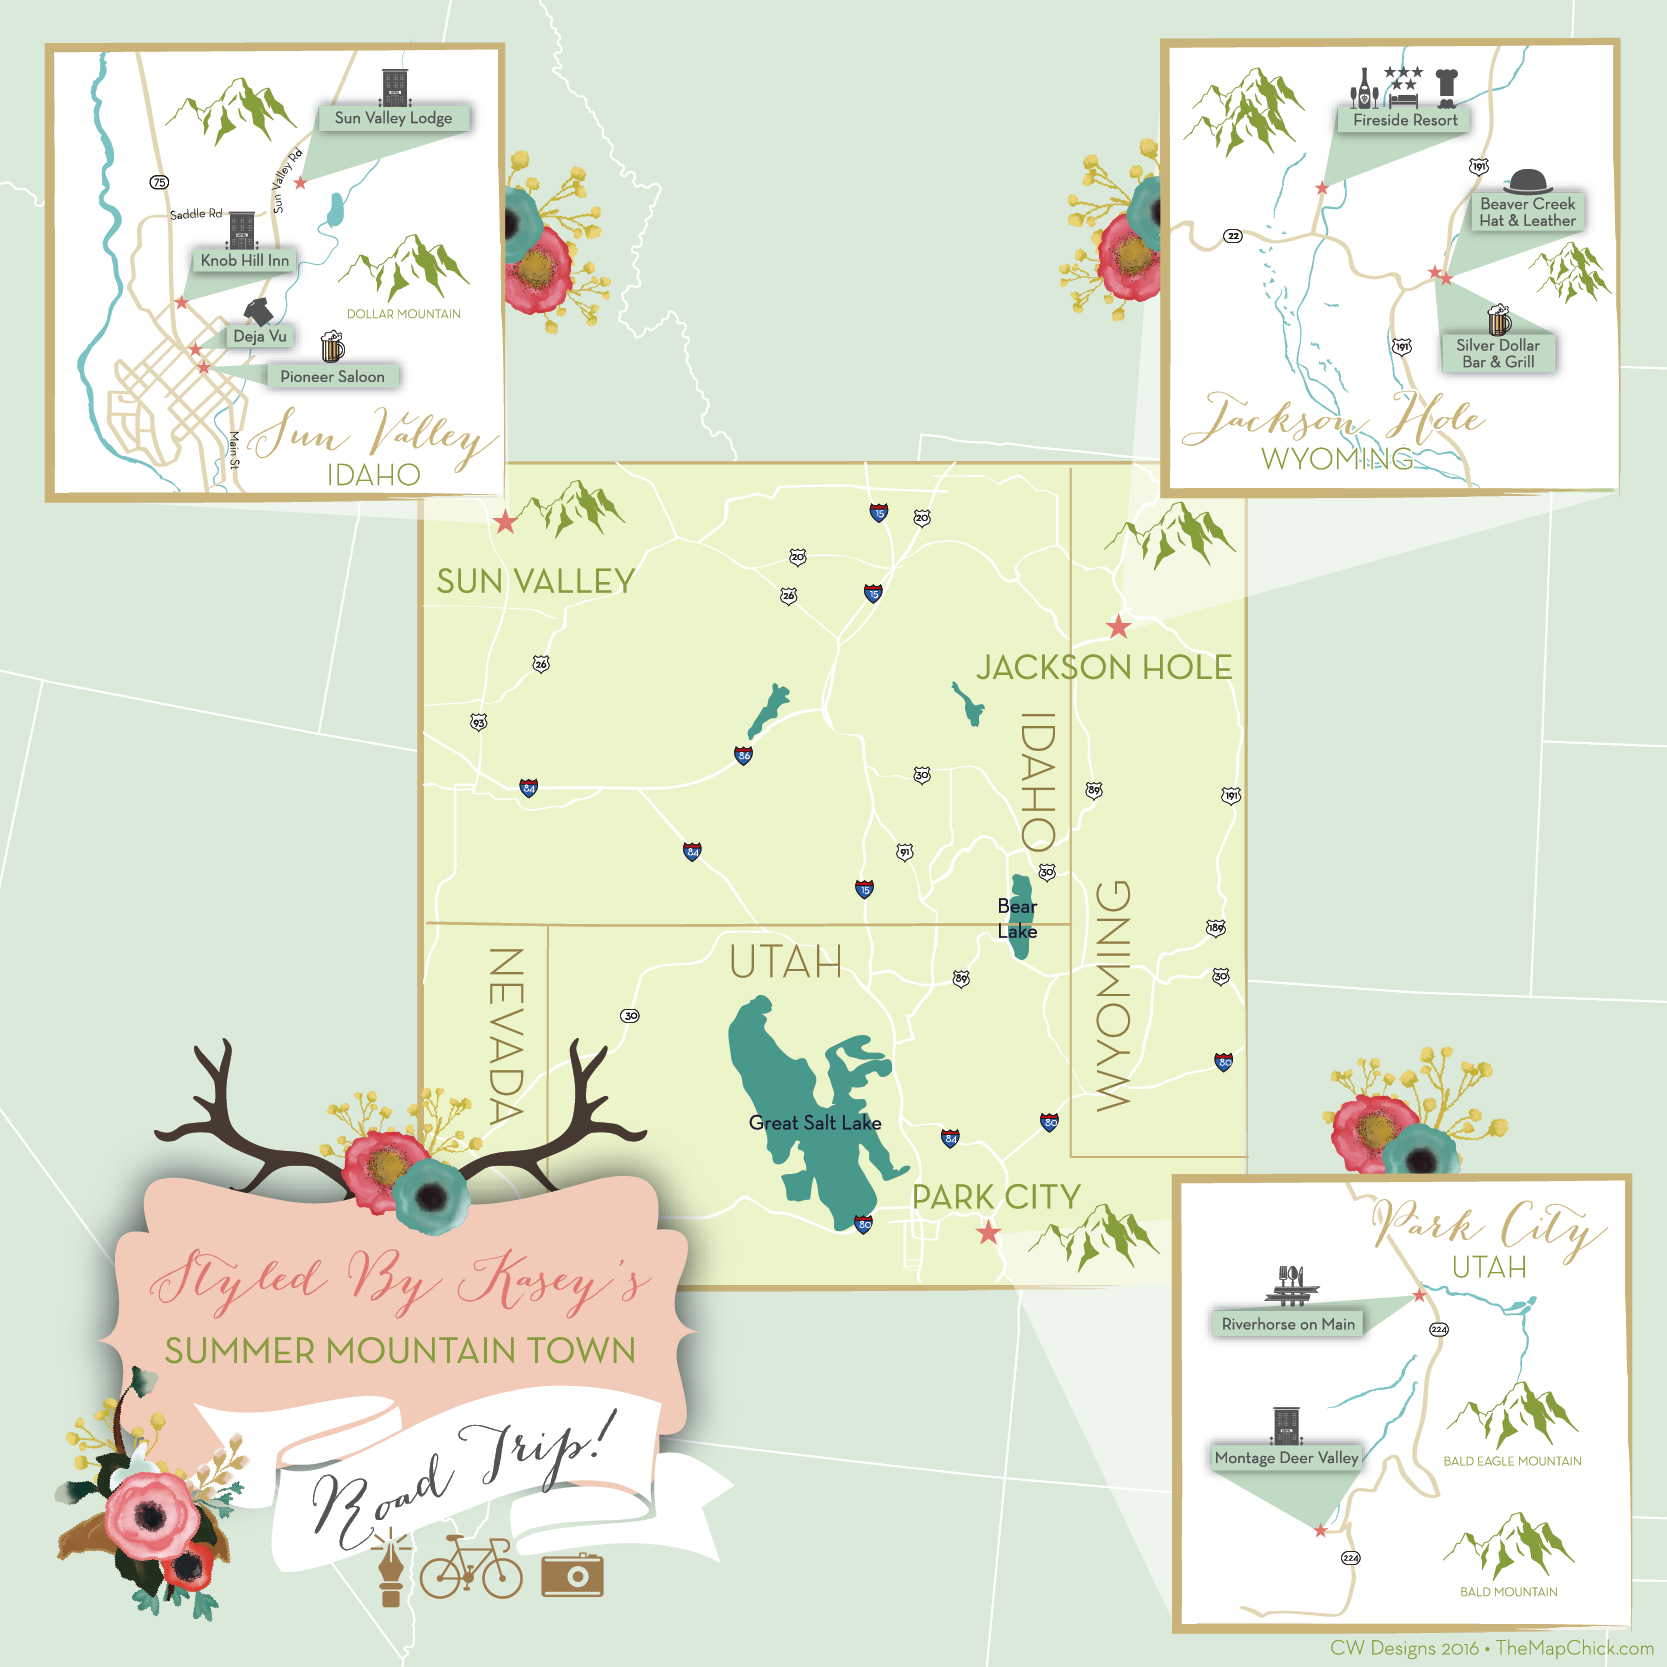 Styled by Kaset Park City Utah Map The Map Chick